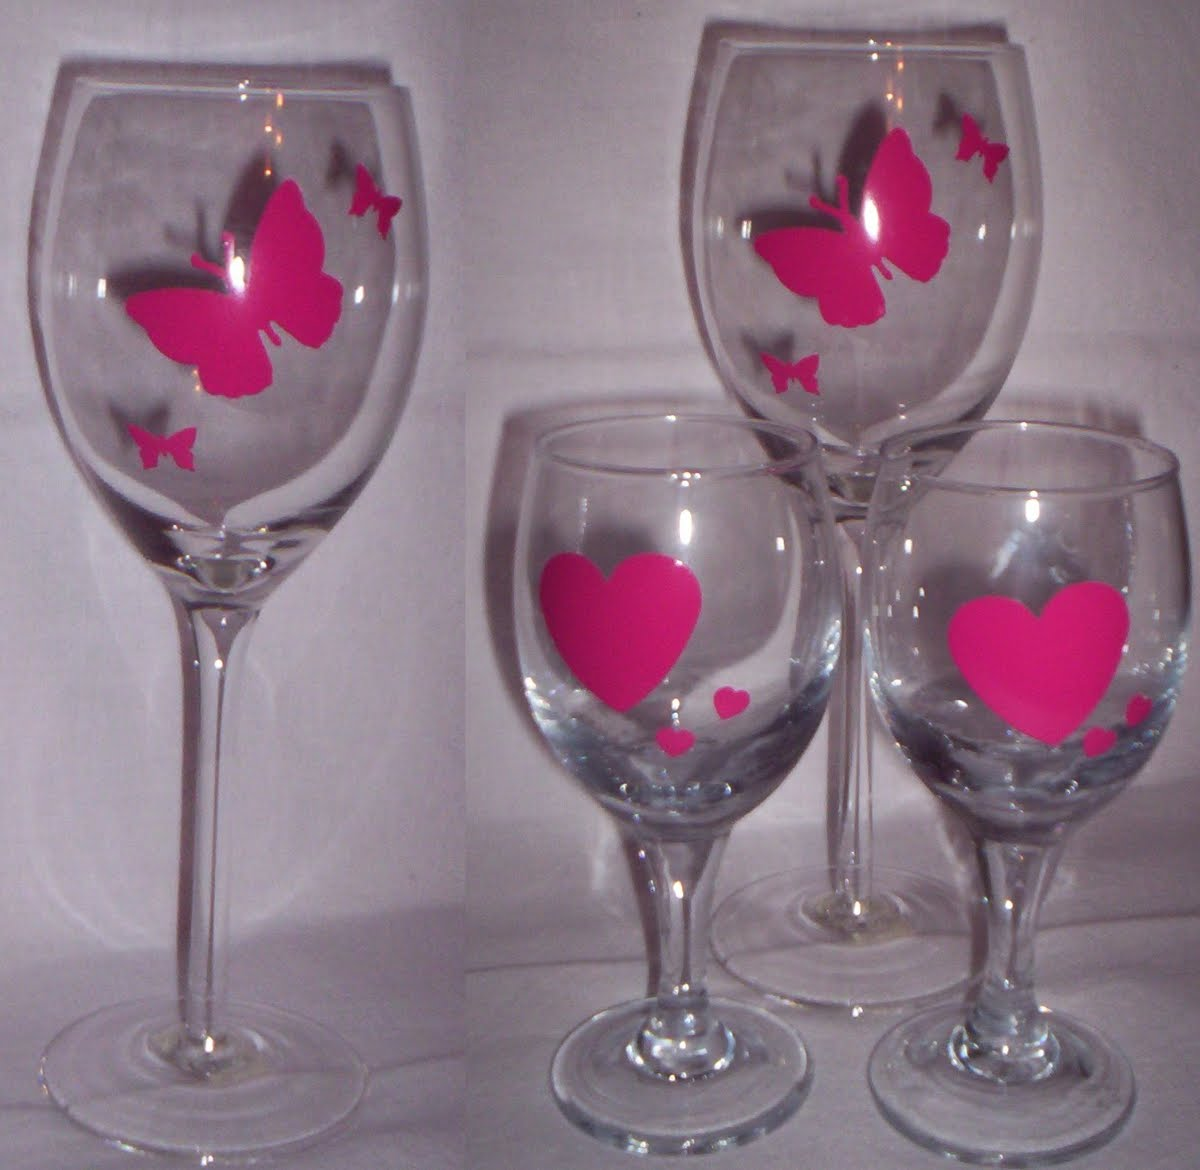 Sharyn And Dave Wine Glasses Decorated With Vinyl